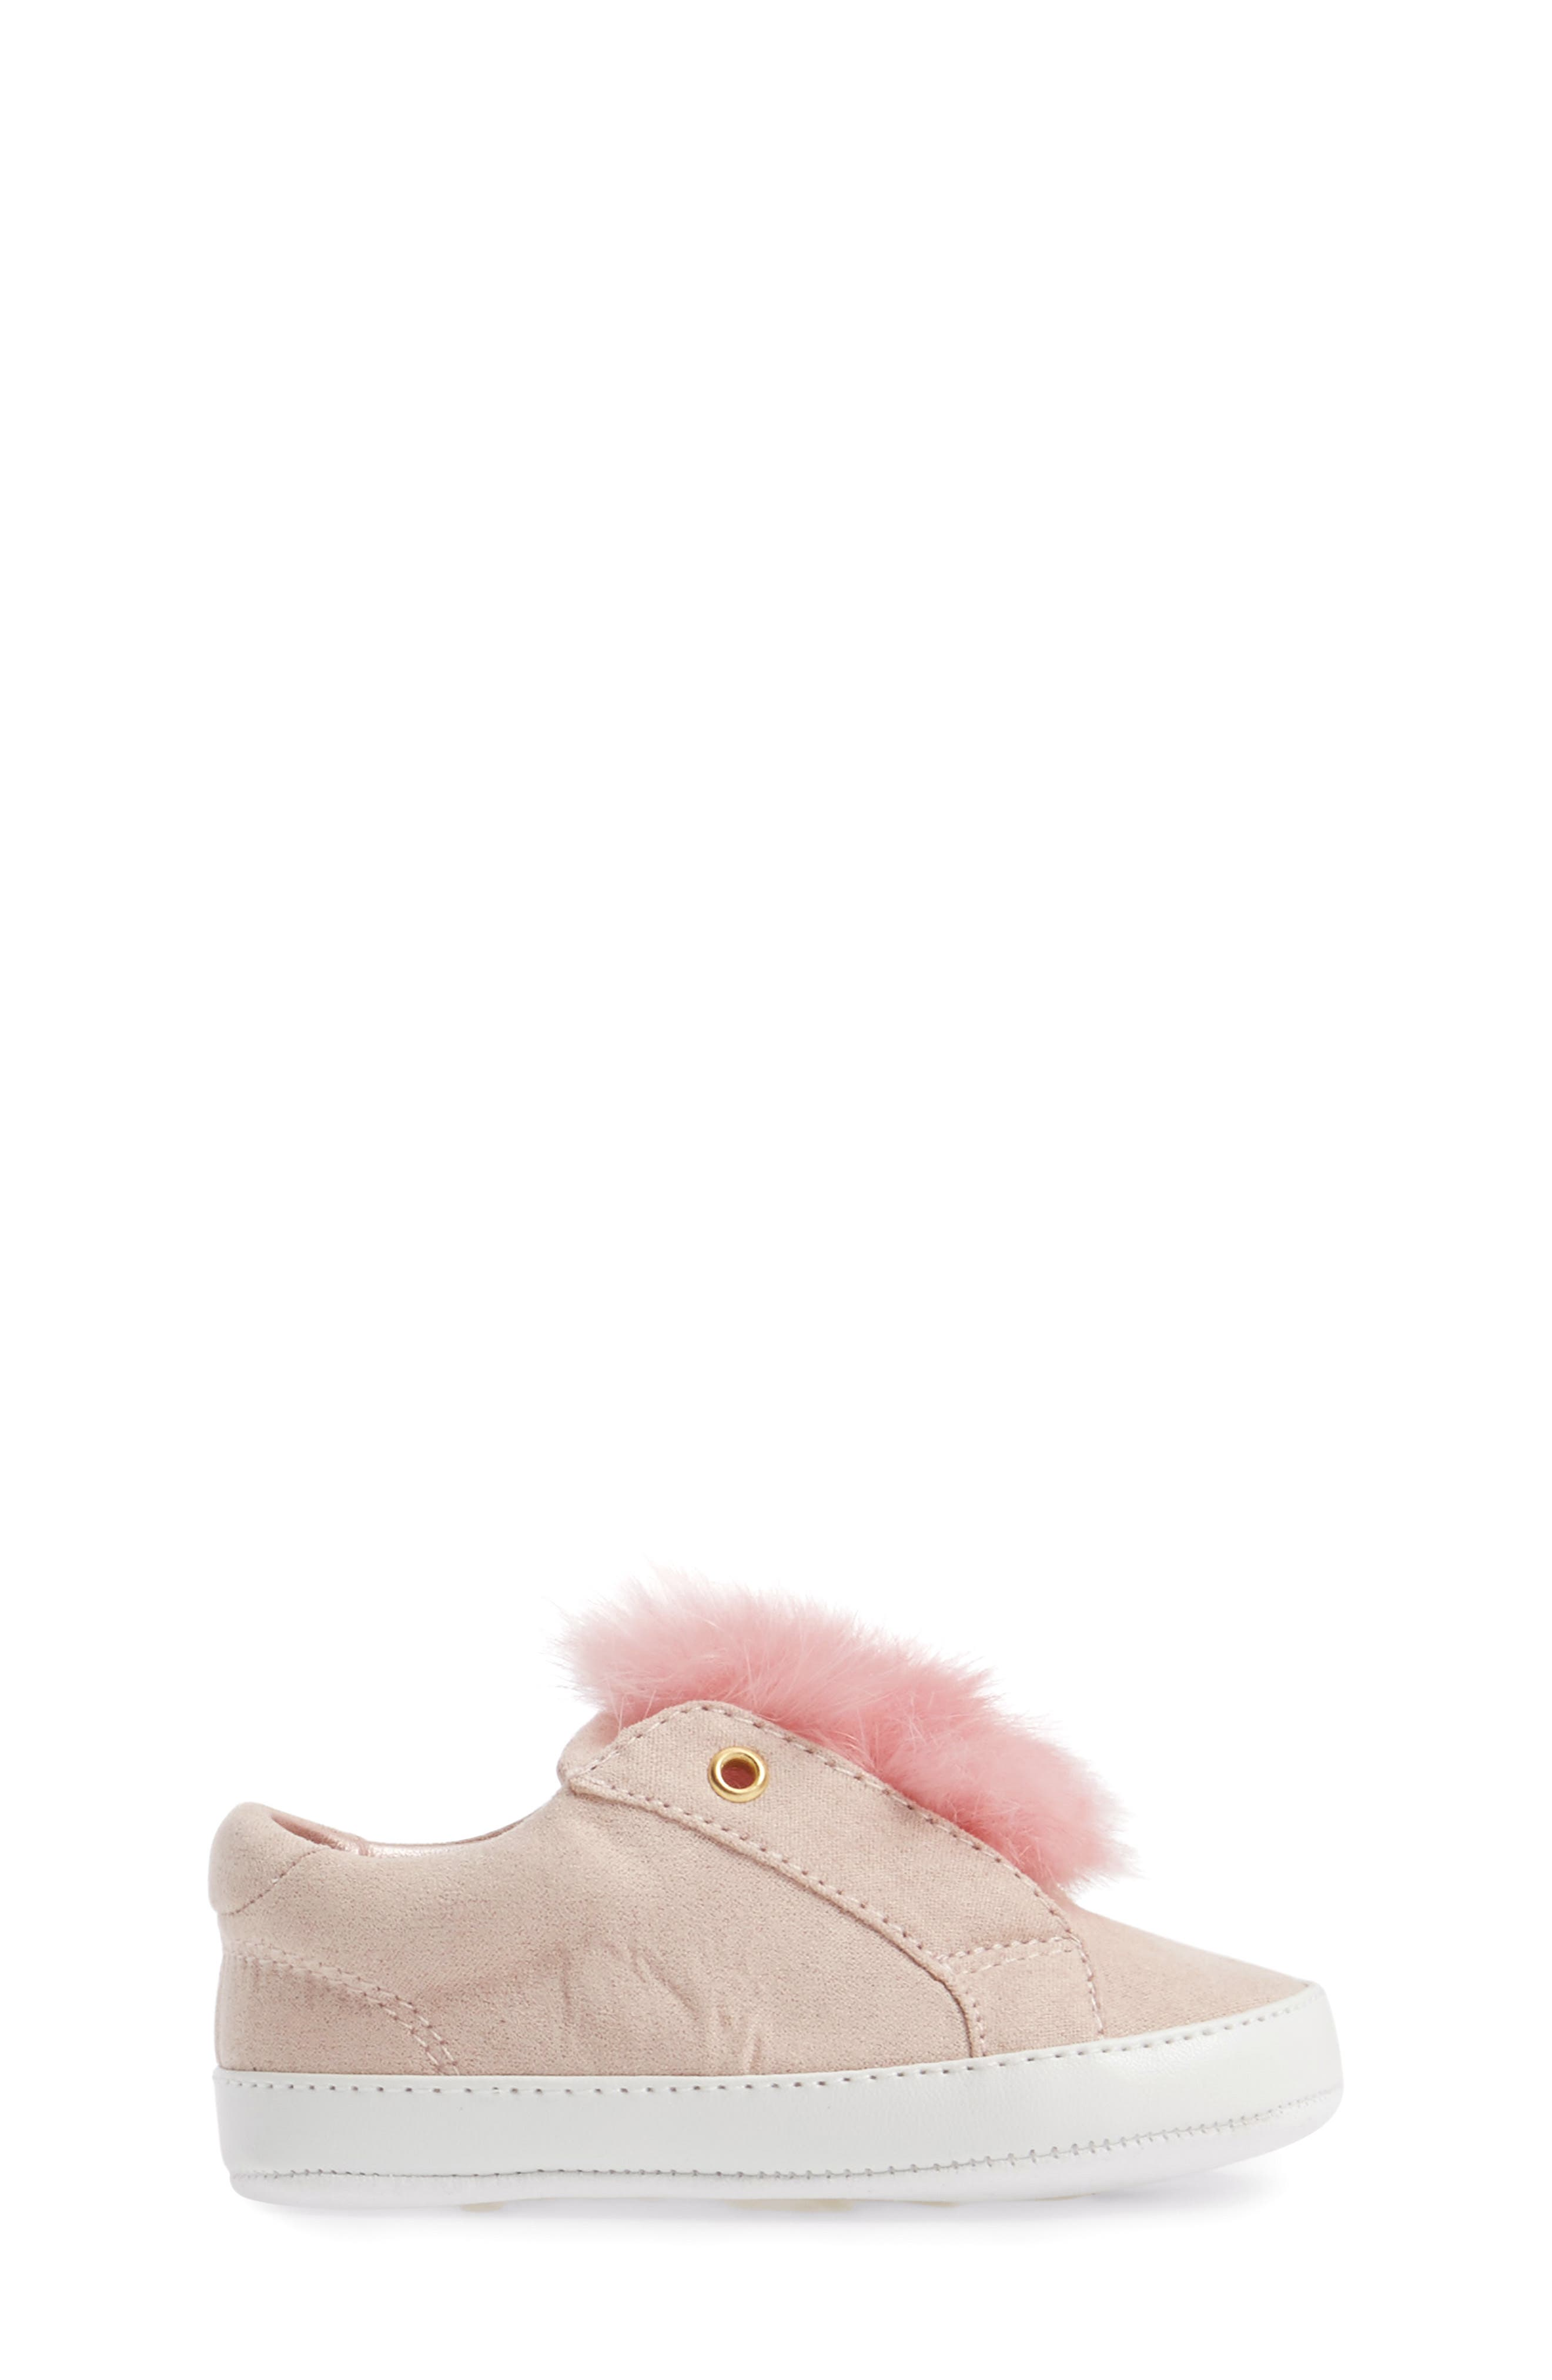 Leya Faux Fur Pompom Sneaker,                             Alternate thumbnail 3, color,                             Pink